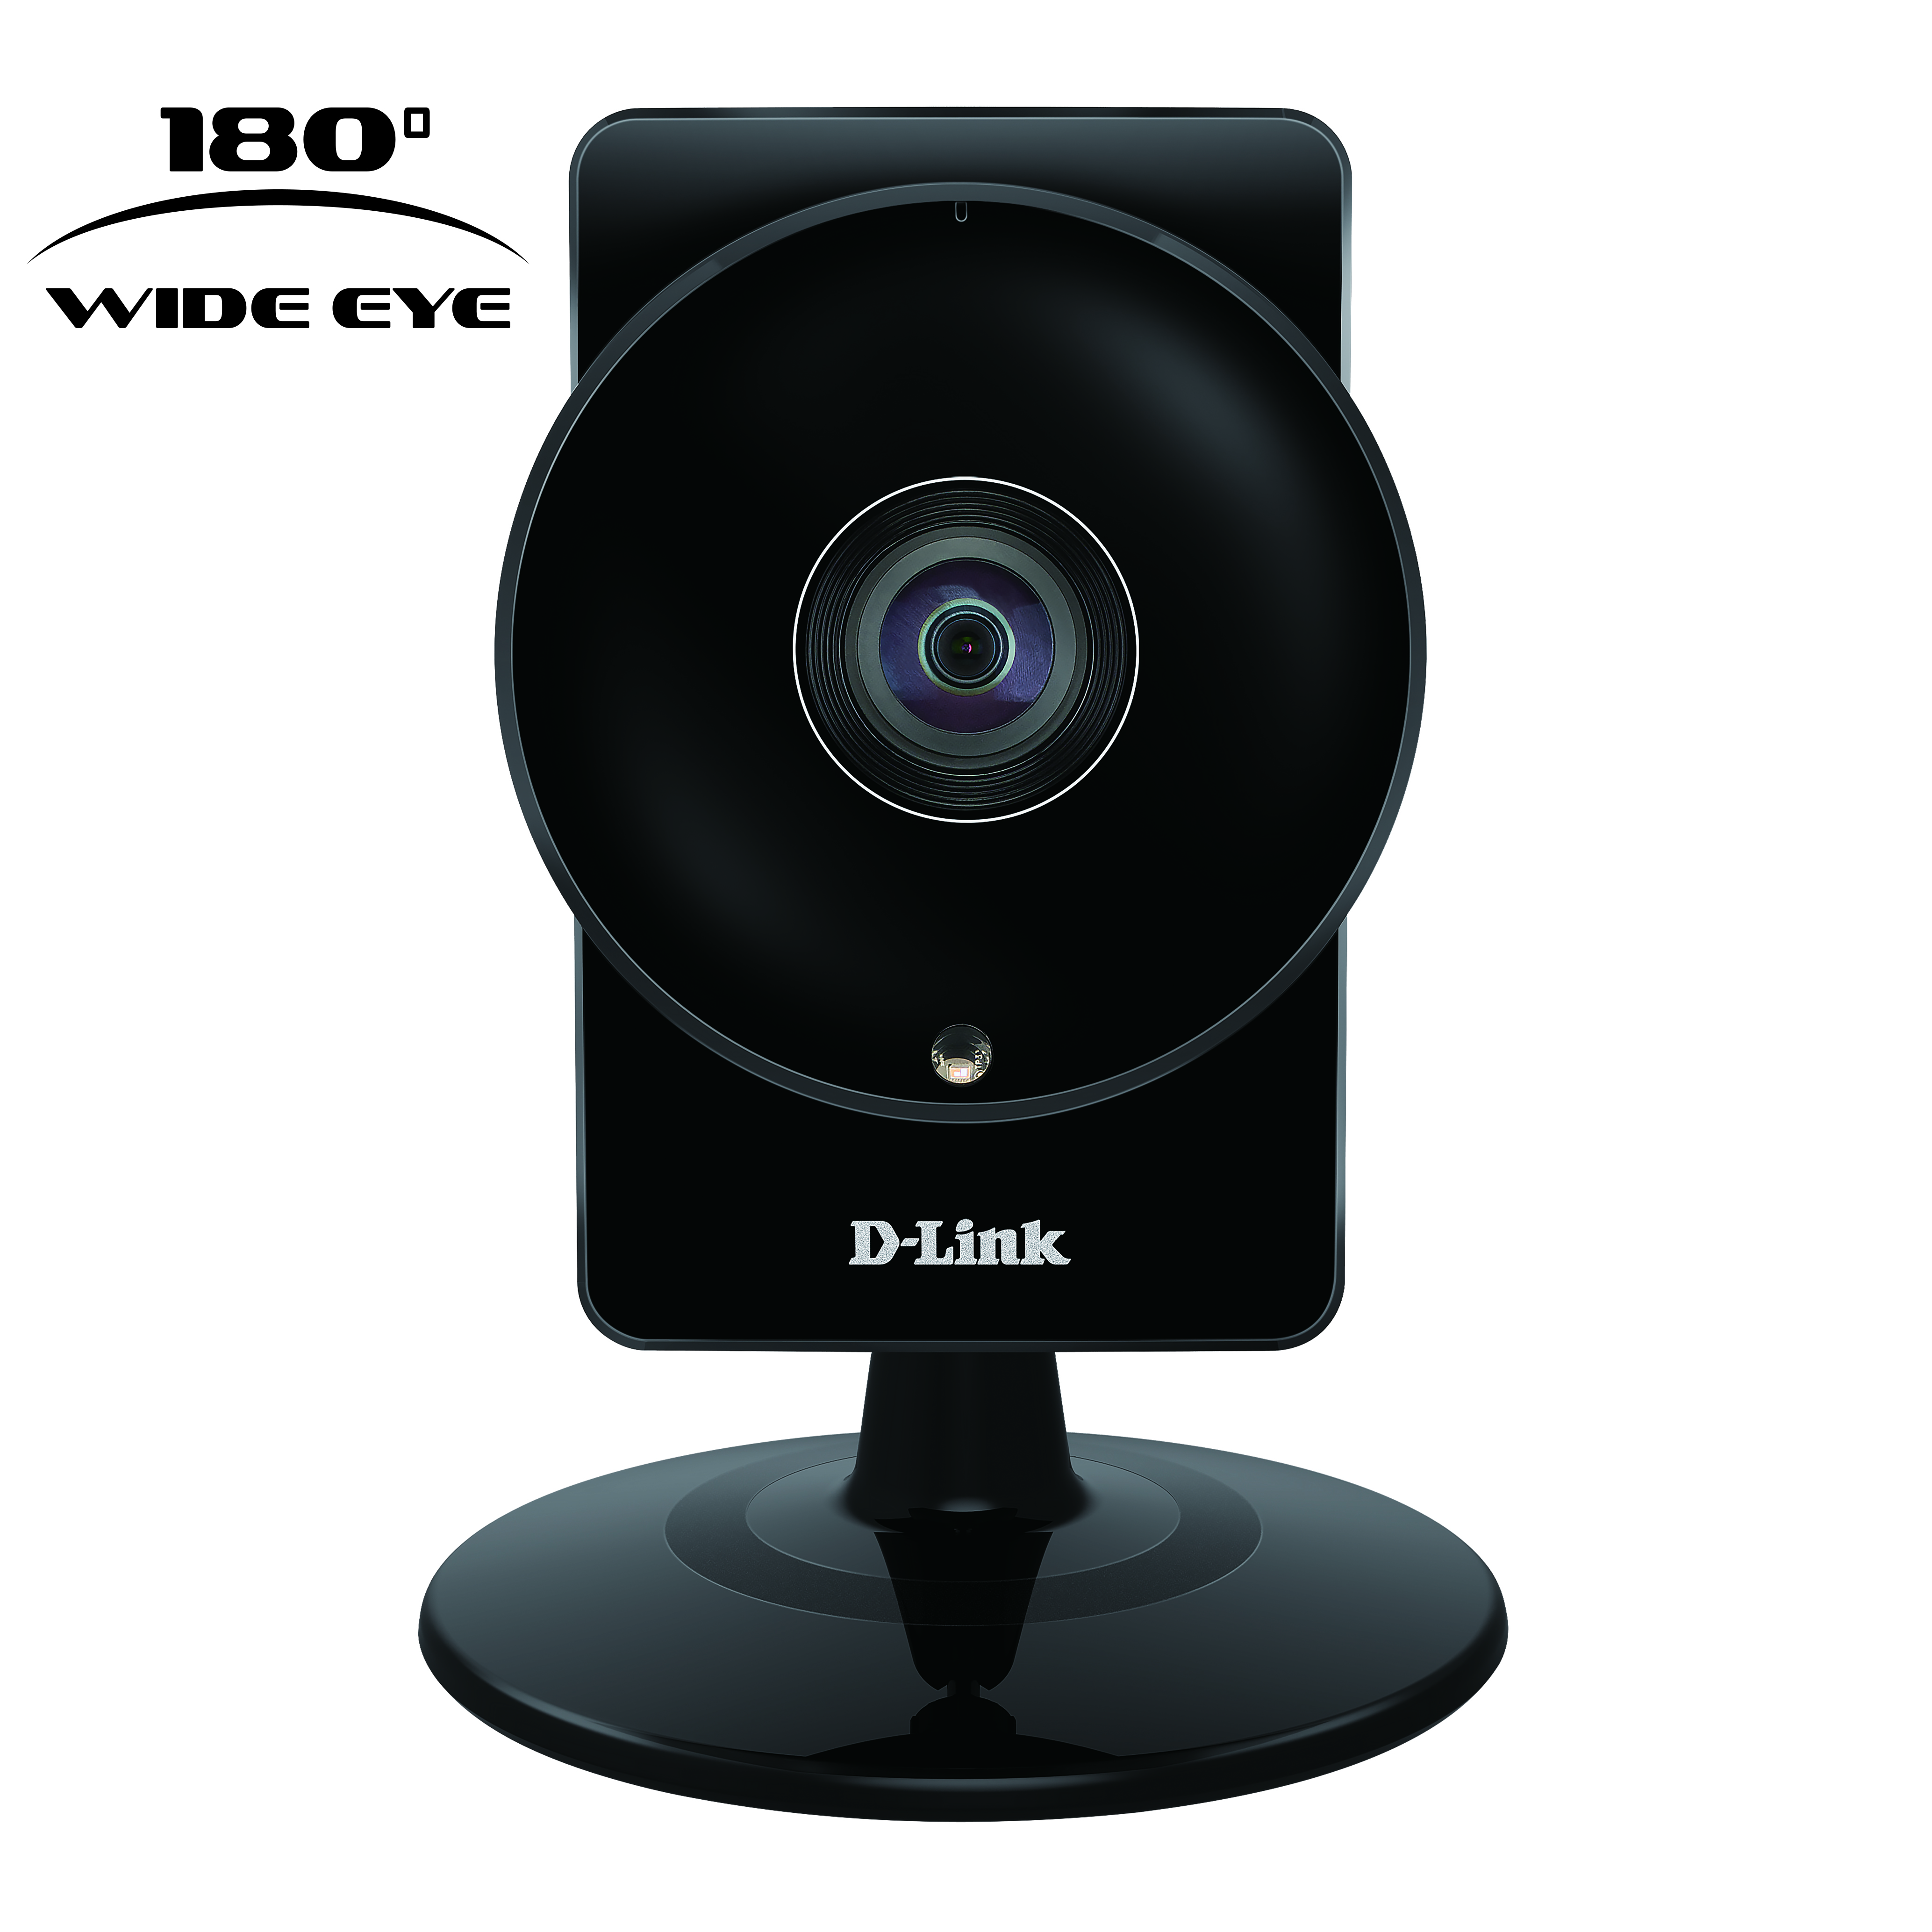 196098 d link%20 %20wide%20eye%20camera%20 %20dcs 960l%20 %20with%20product%20logo%20 %2035cm%20 %20300dpi fd4db5 original 1455890670